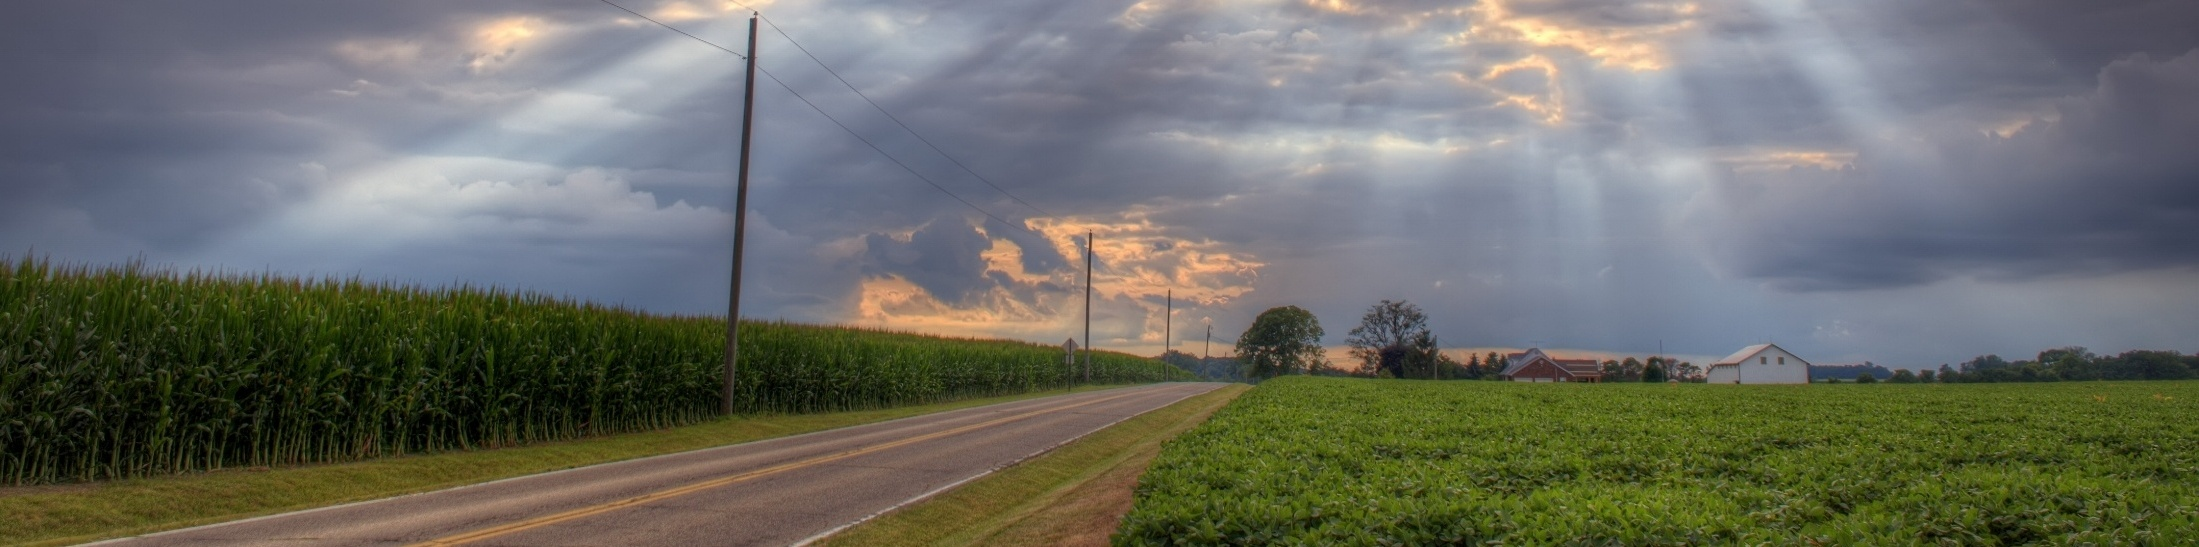 Ohio Corn and Soybeans-649285-edited-718464-edited